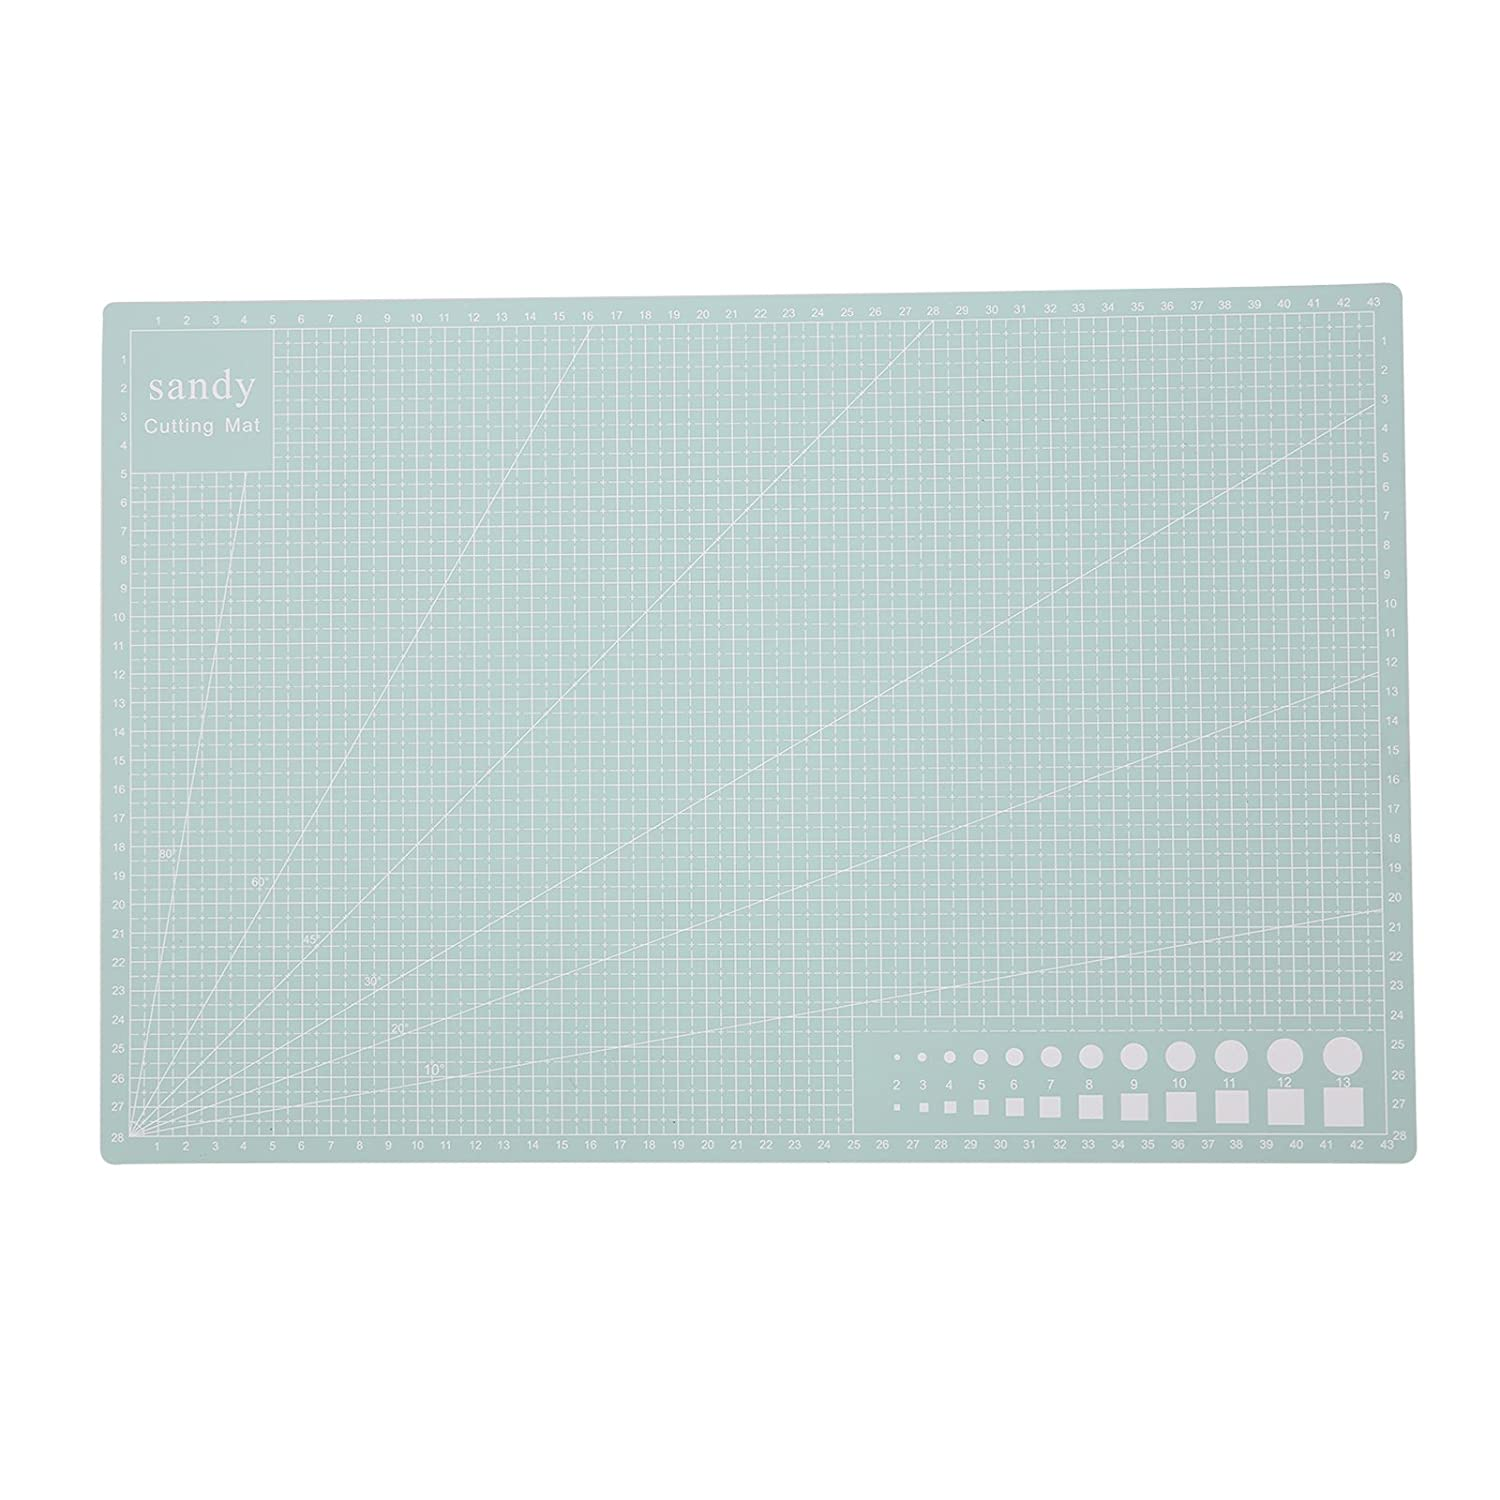 DHOUTDOORS A3 Cutting Mat Self Healing Non Slip Craft Quilting Printed Grid Lines Mint Green oem